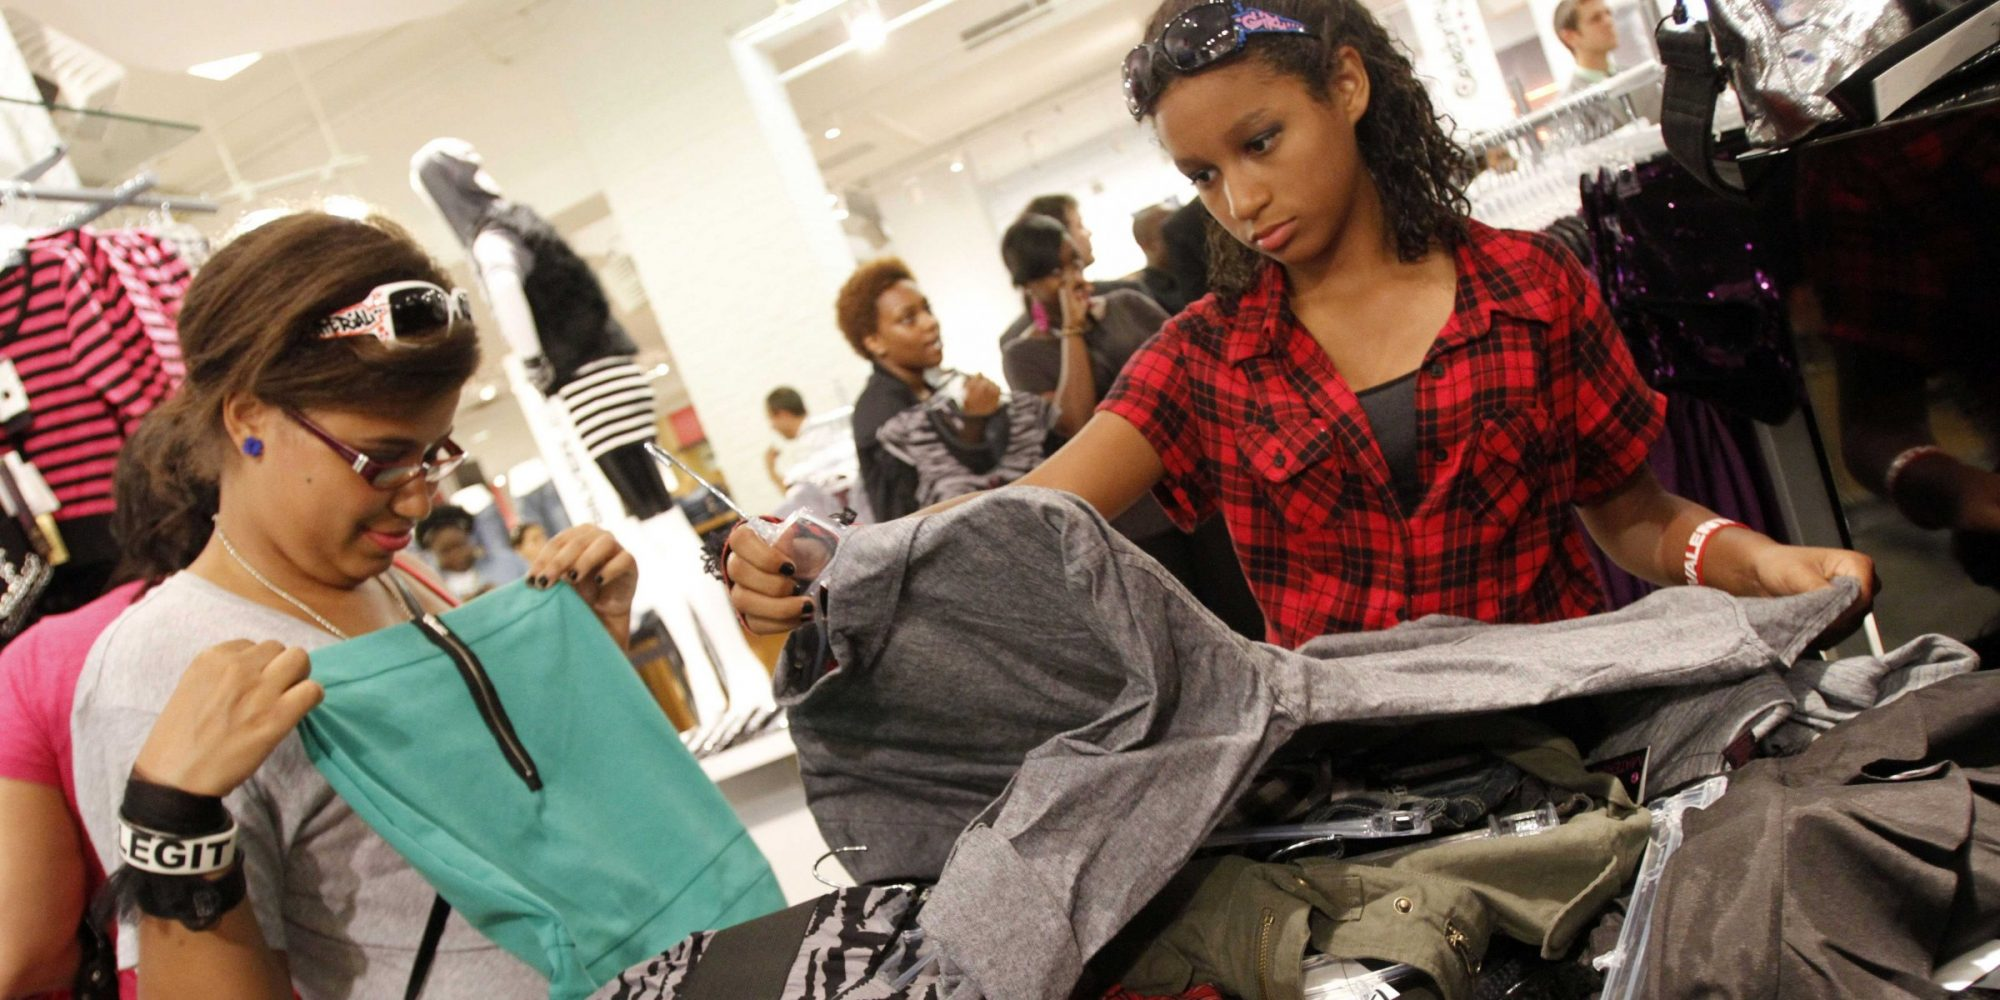 Teens no longer want the one thing retailers have been banking on for years